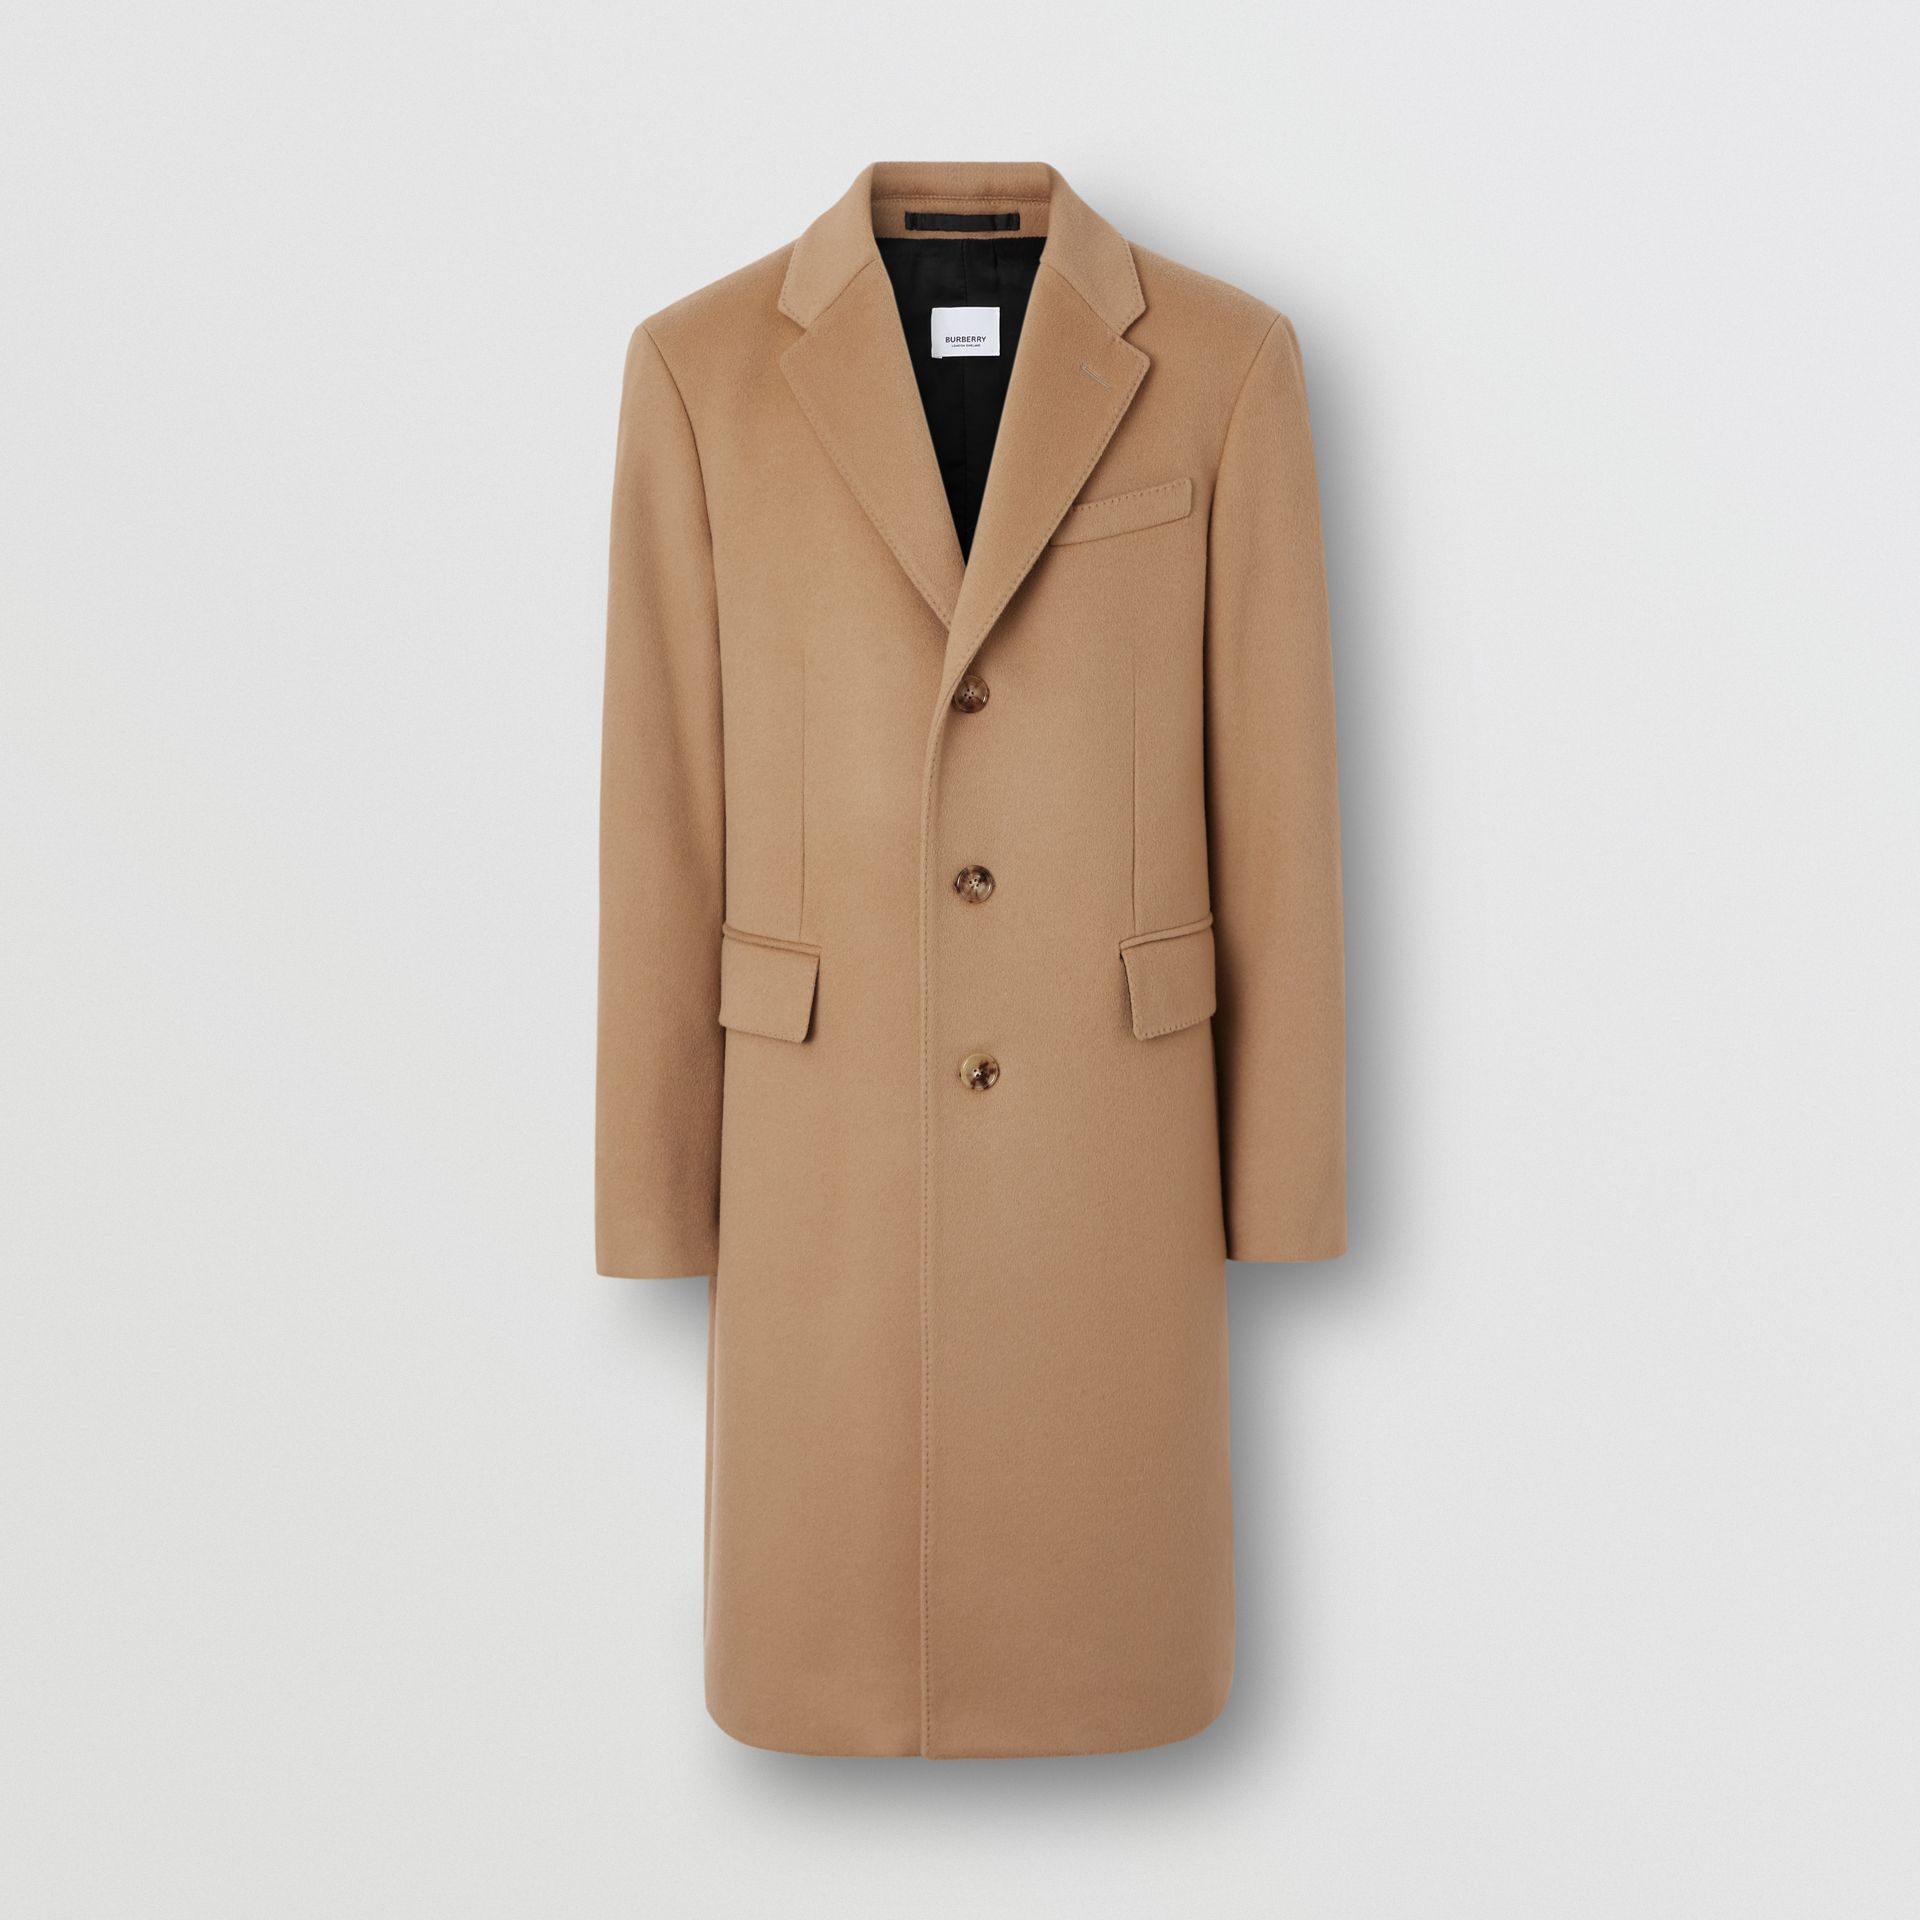 Wool Cashmere Tailored Coat in Camel - Men | Burberry Singapore - gallery image 3